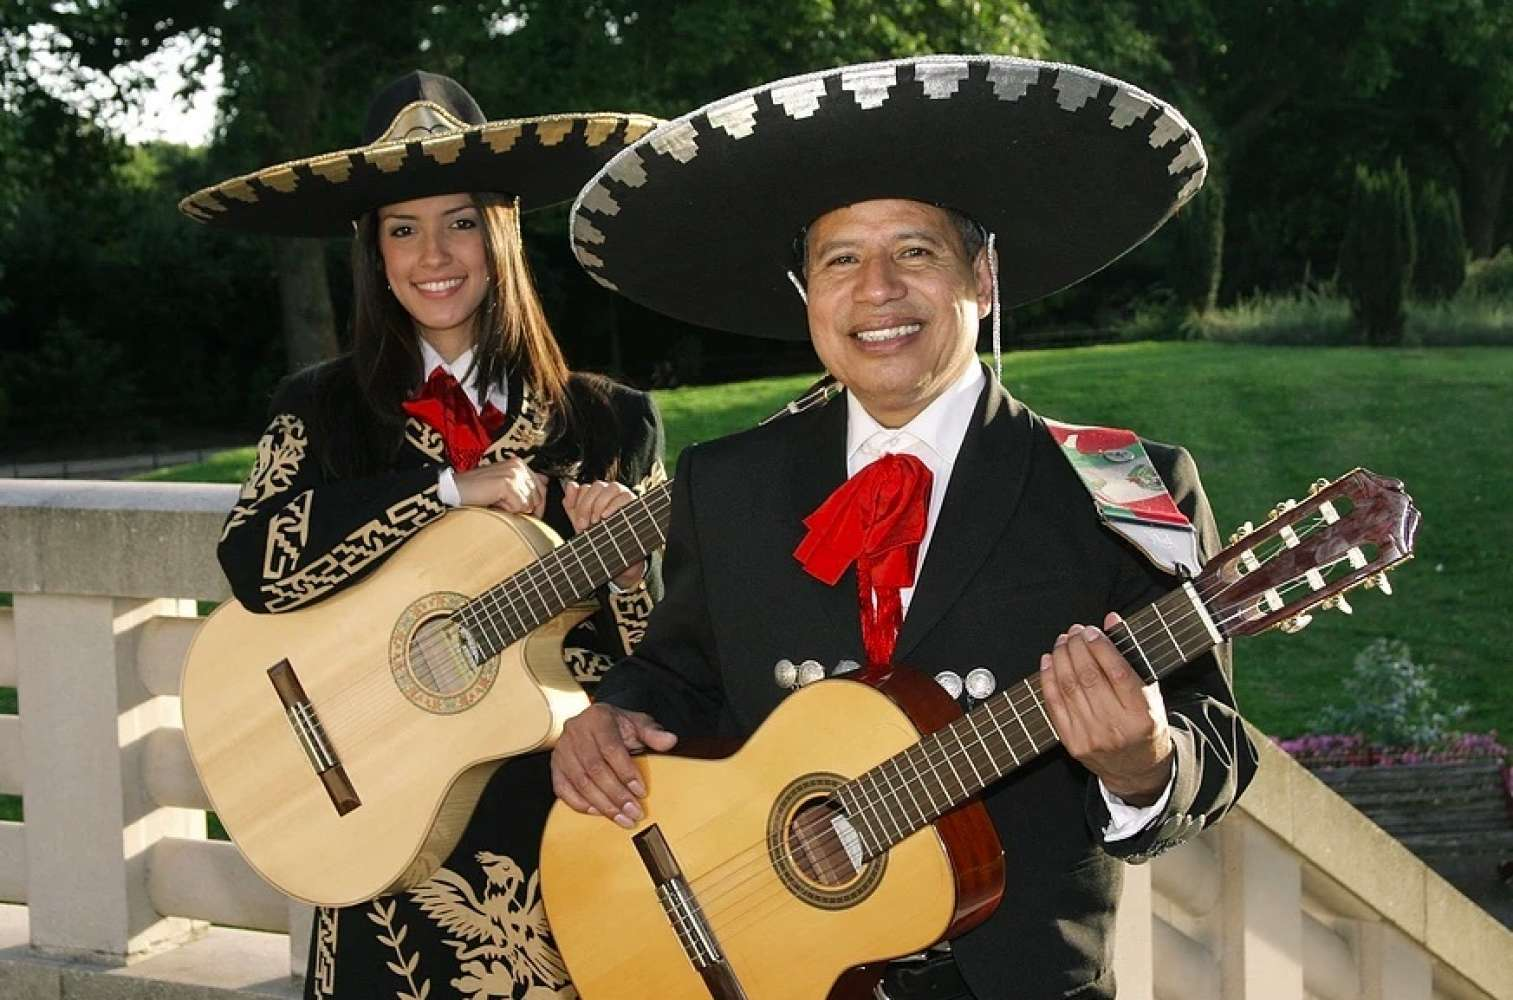 Mariachi Audaz | London Mariachi Band For Hire